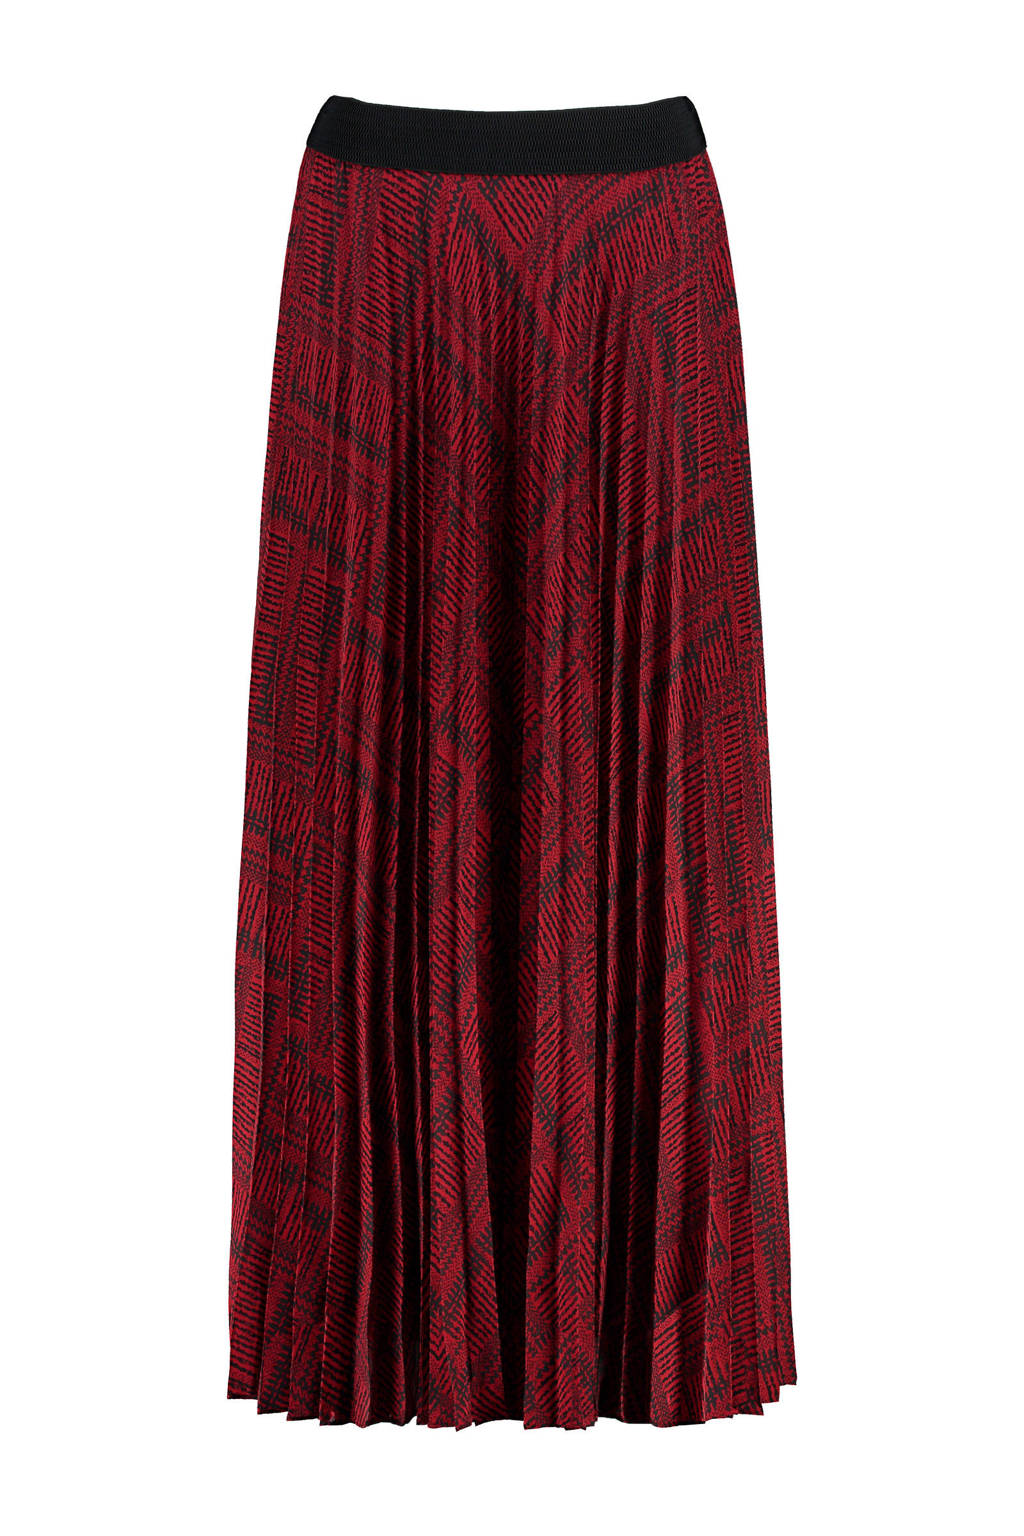 Expresso rok rood, Rood